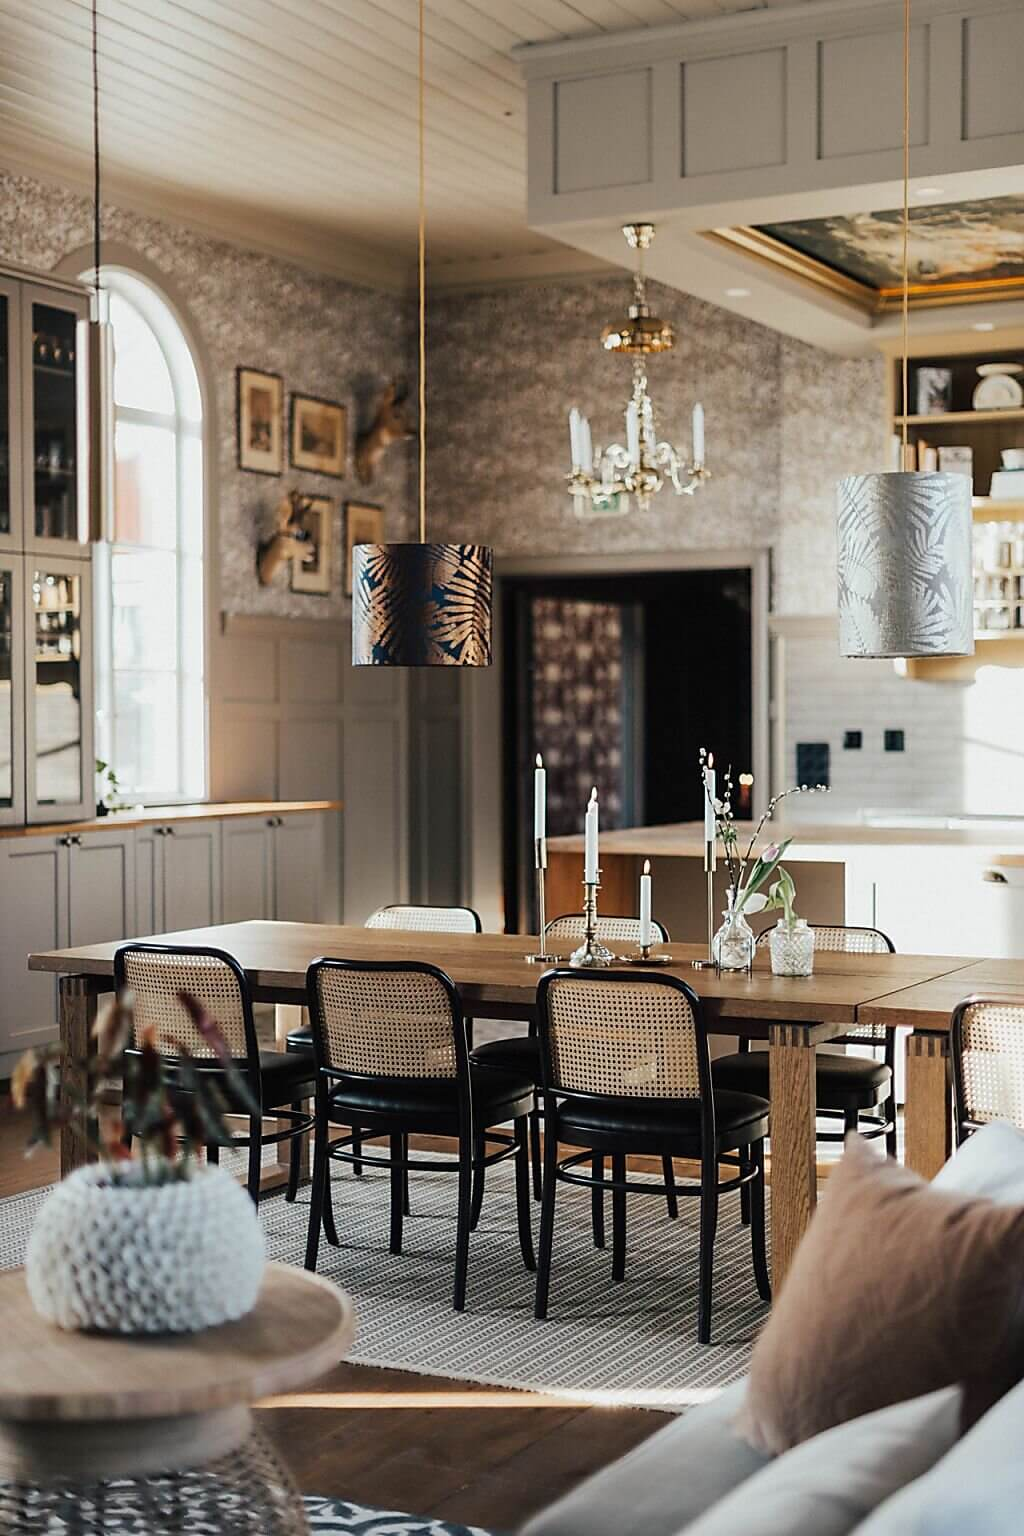 A Beautiful Chapel Conversion in Sweden